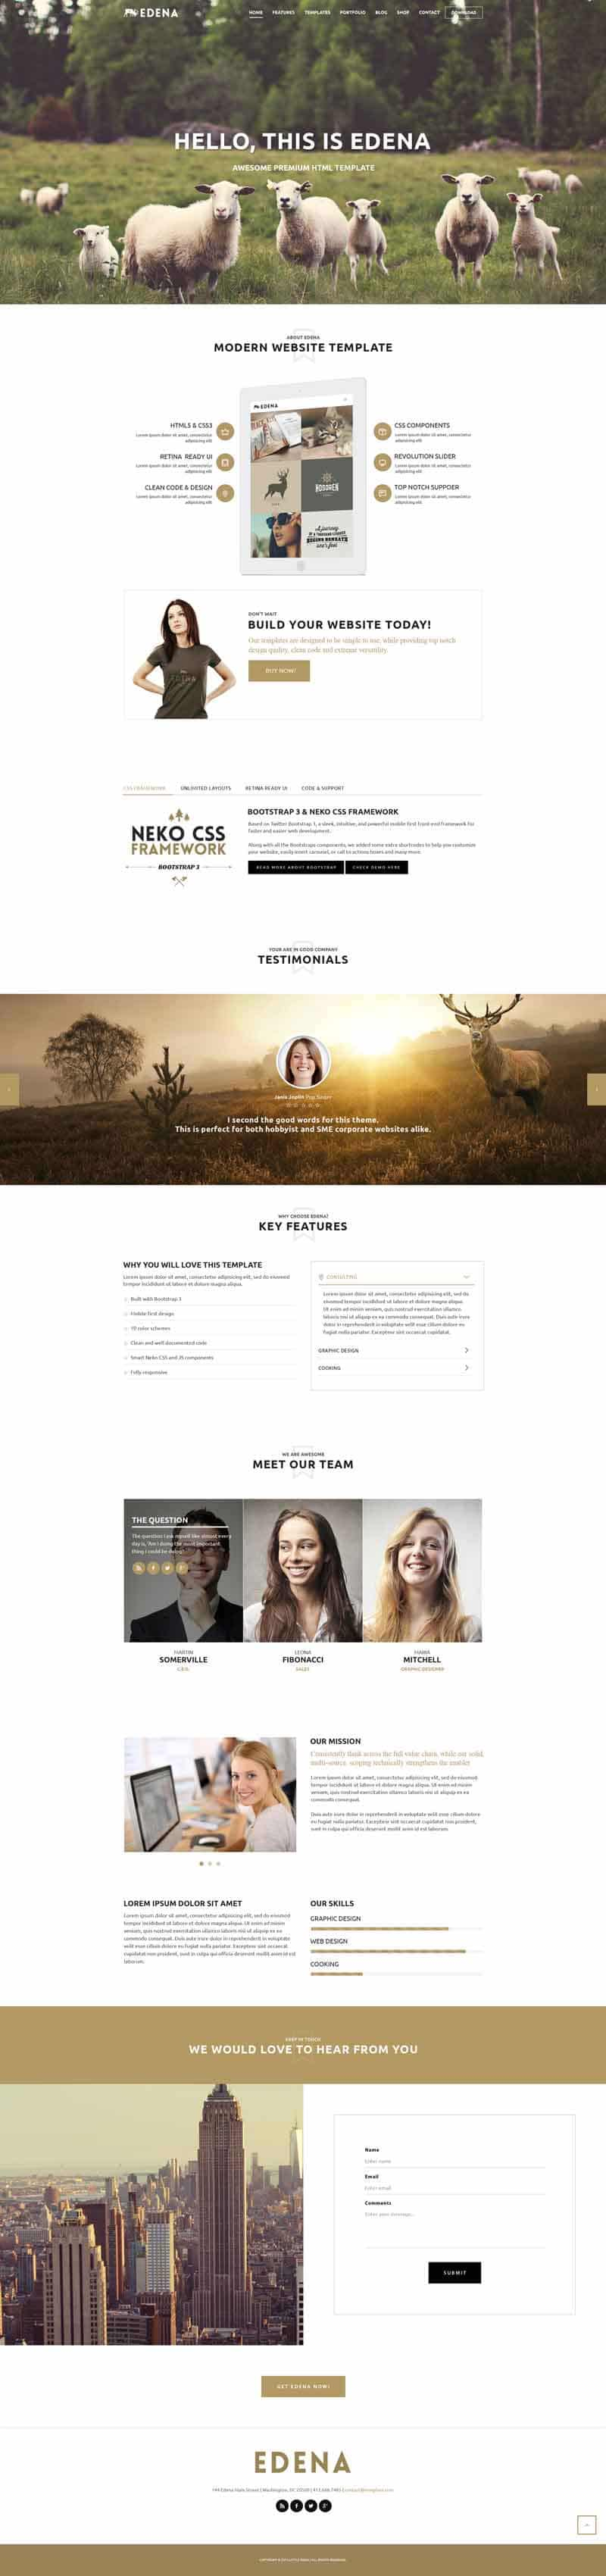 Edena - Free Website Template PSD